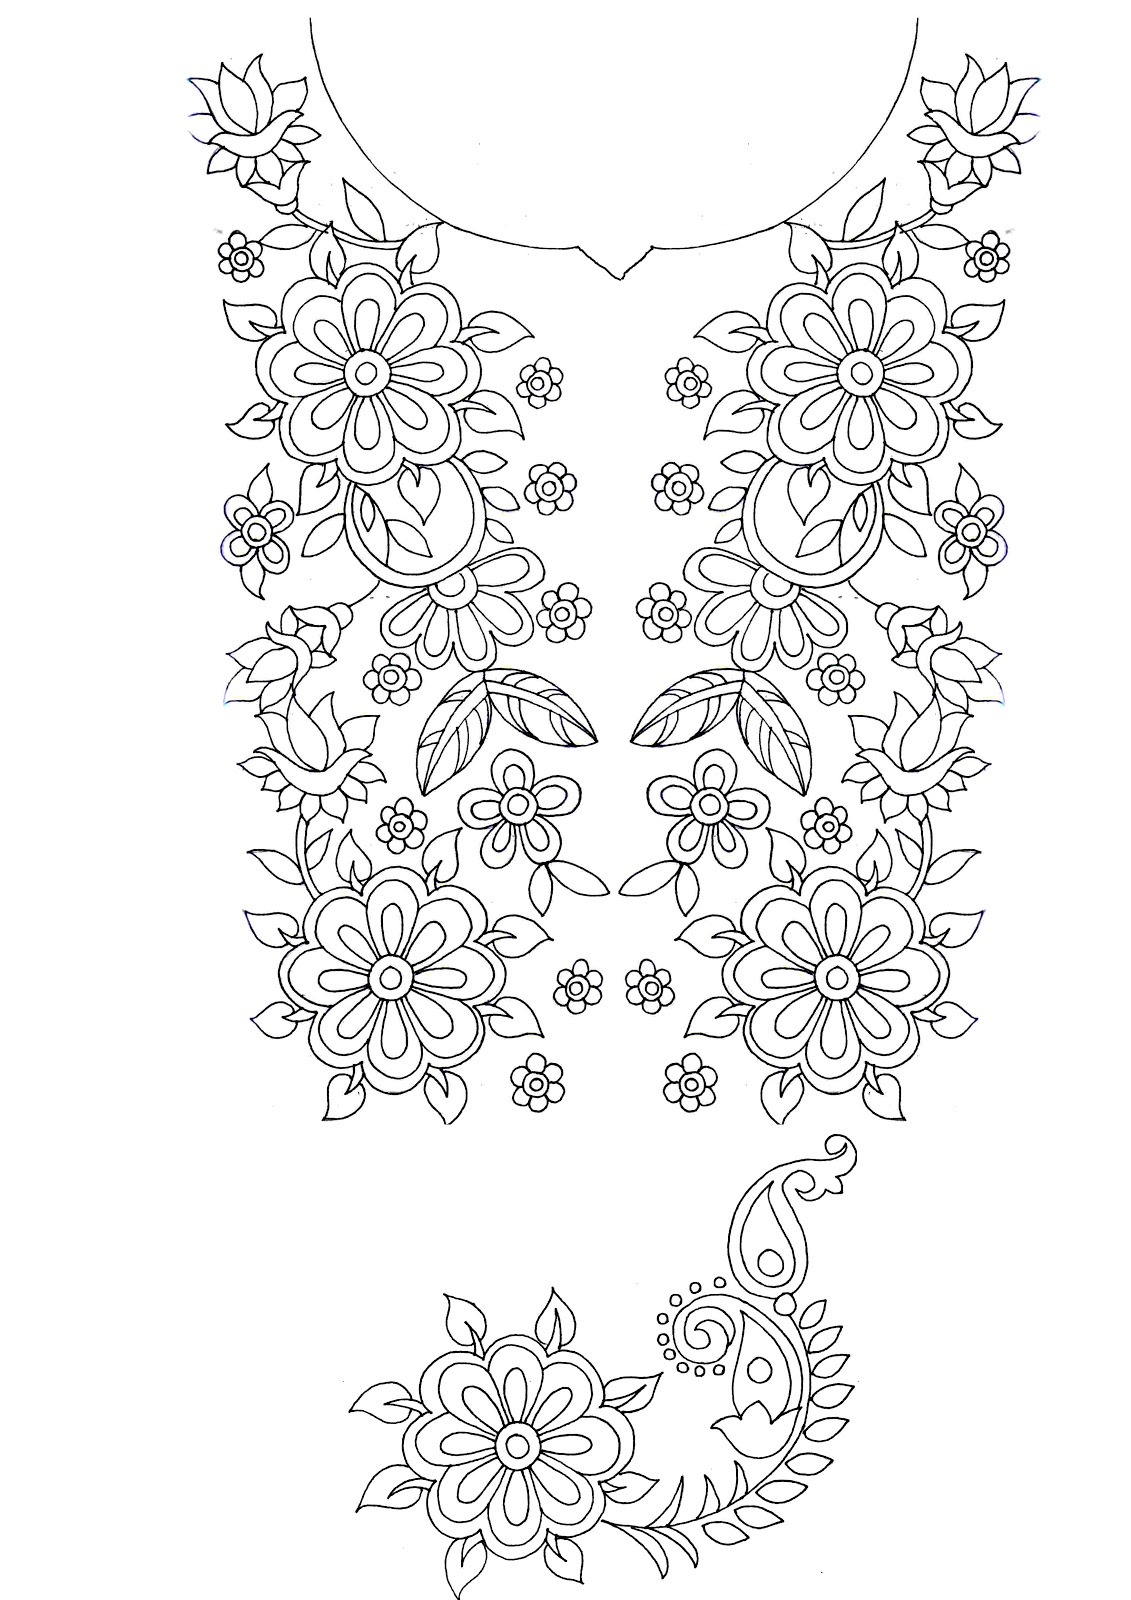 Embdesigntube embroidery sketches shared by sarika agrawaal